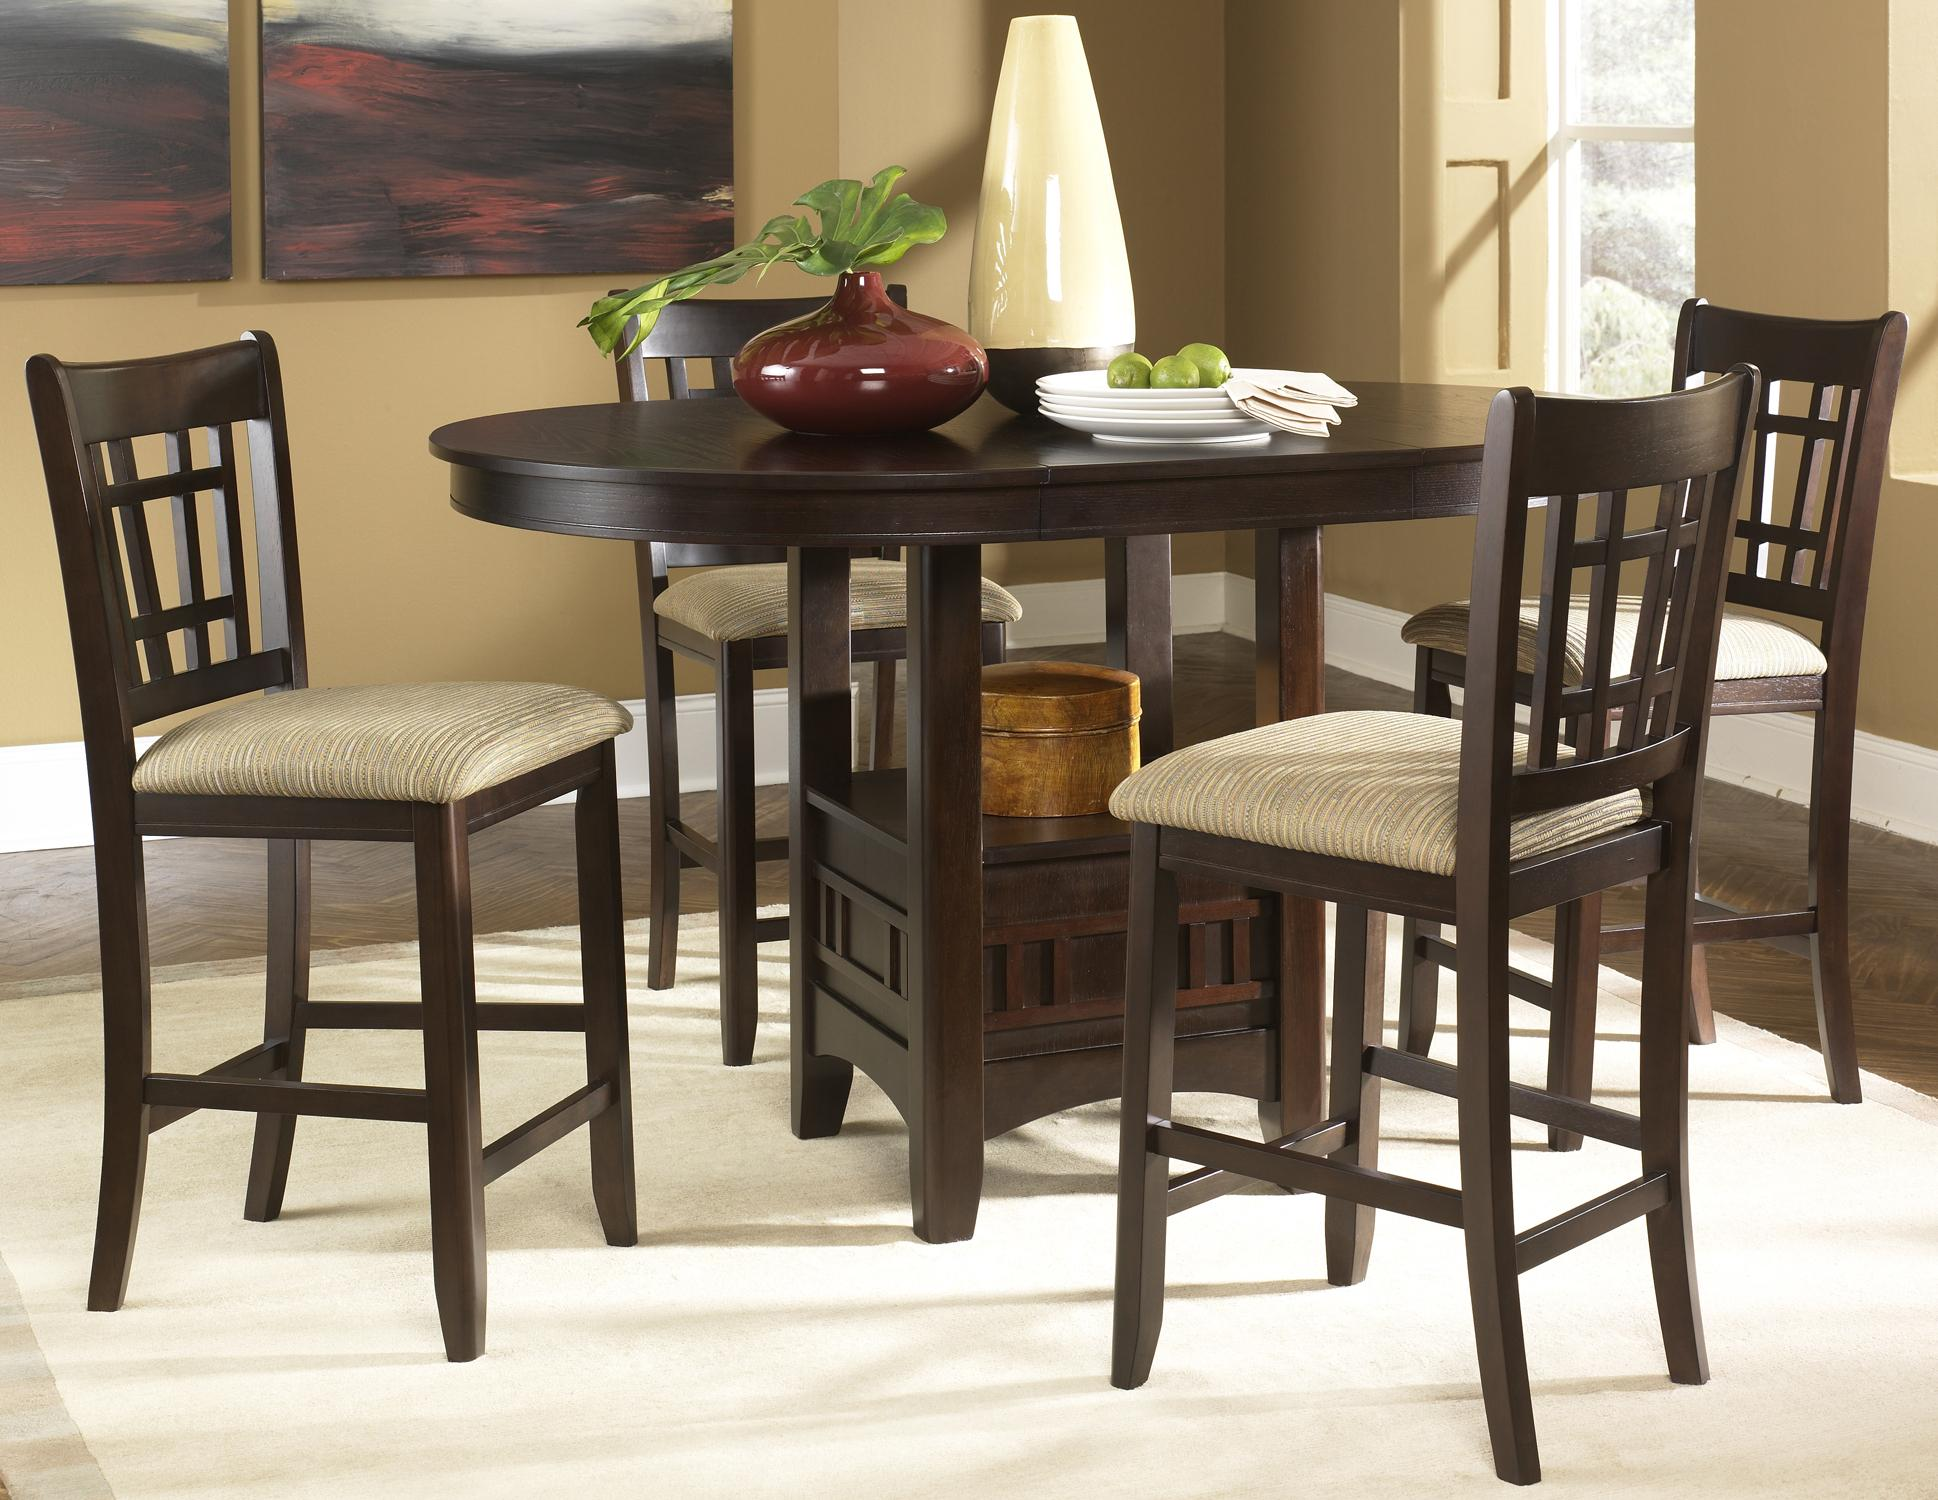 Oval Pub Table & 24 Inch Upholstered Bar Stool Set by Liberty